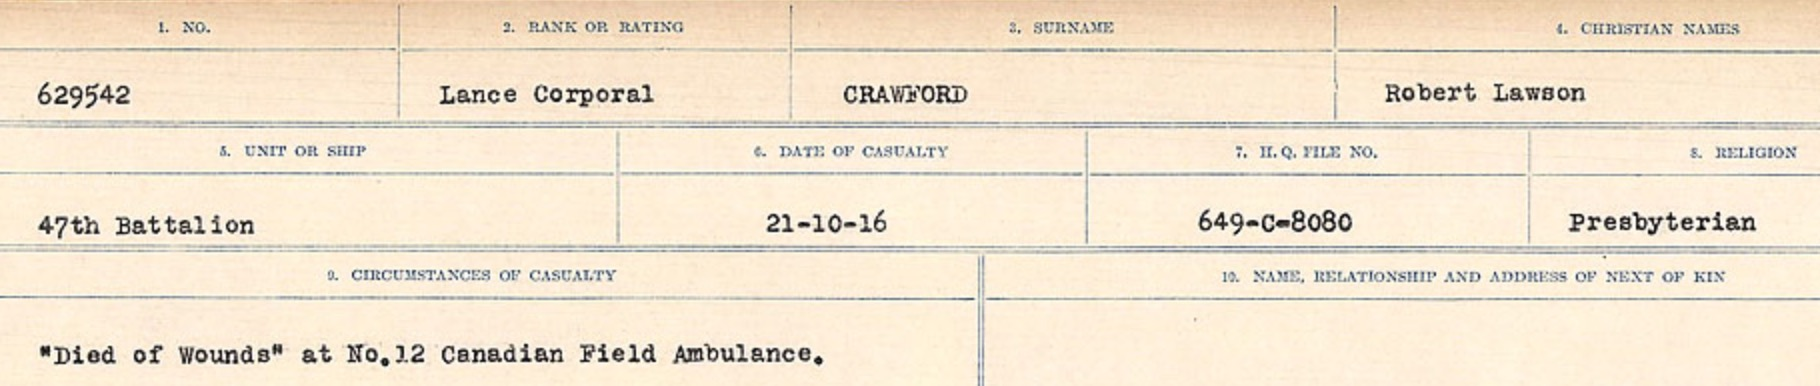 Circumstances of death registers– Source: Library and Archives Canada. CIRCUMSTANCES OF DEATH REGISTERS, FIRST WORLD WAR Surnames: CRABB TO CROSSLAND Microform Sequence 24; Volume Number 31829_B016733. Reference RG150, 1992-93/314, 168. Page 383 of 788.